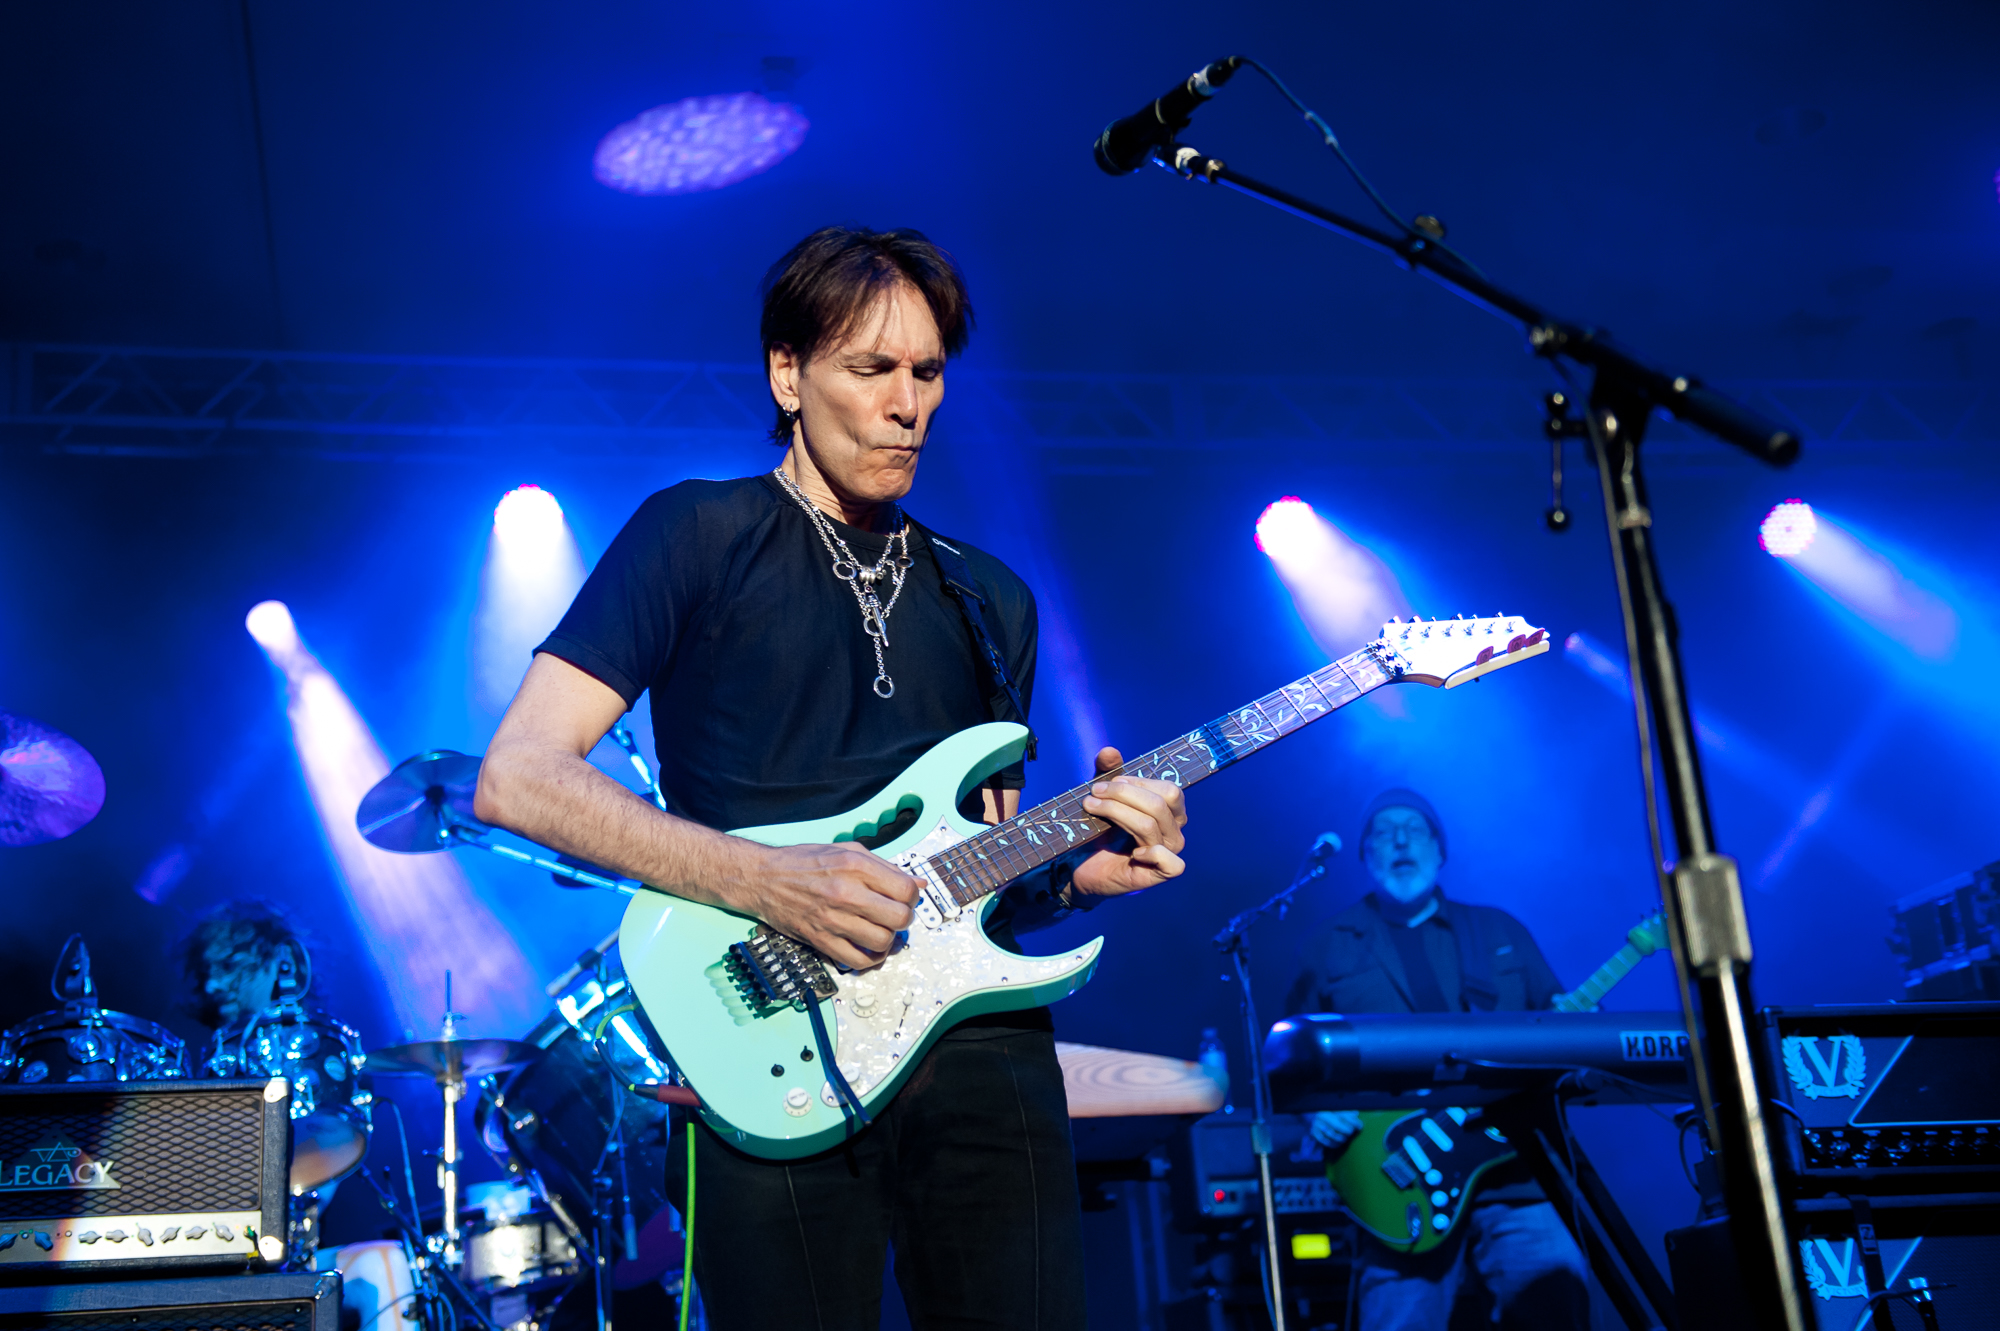 Steve Vai Explains Participation in